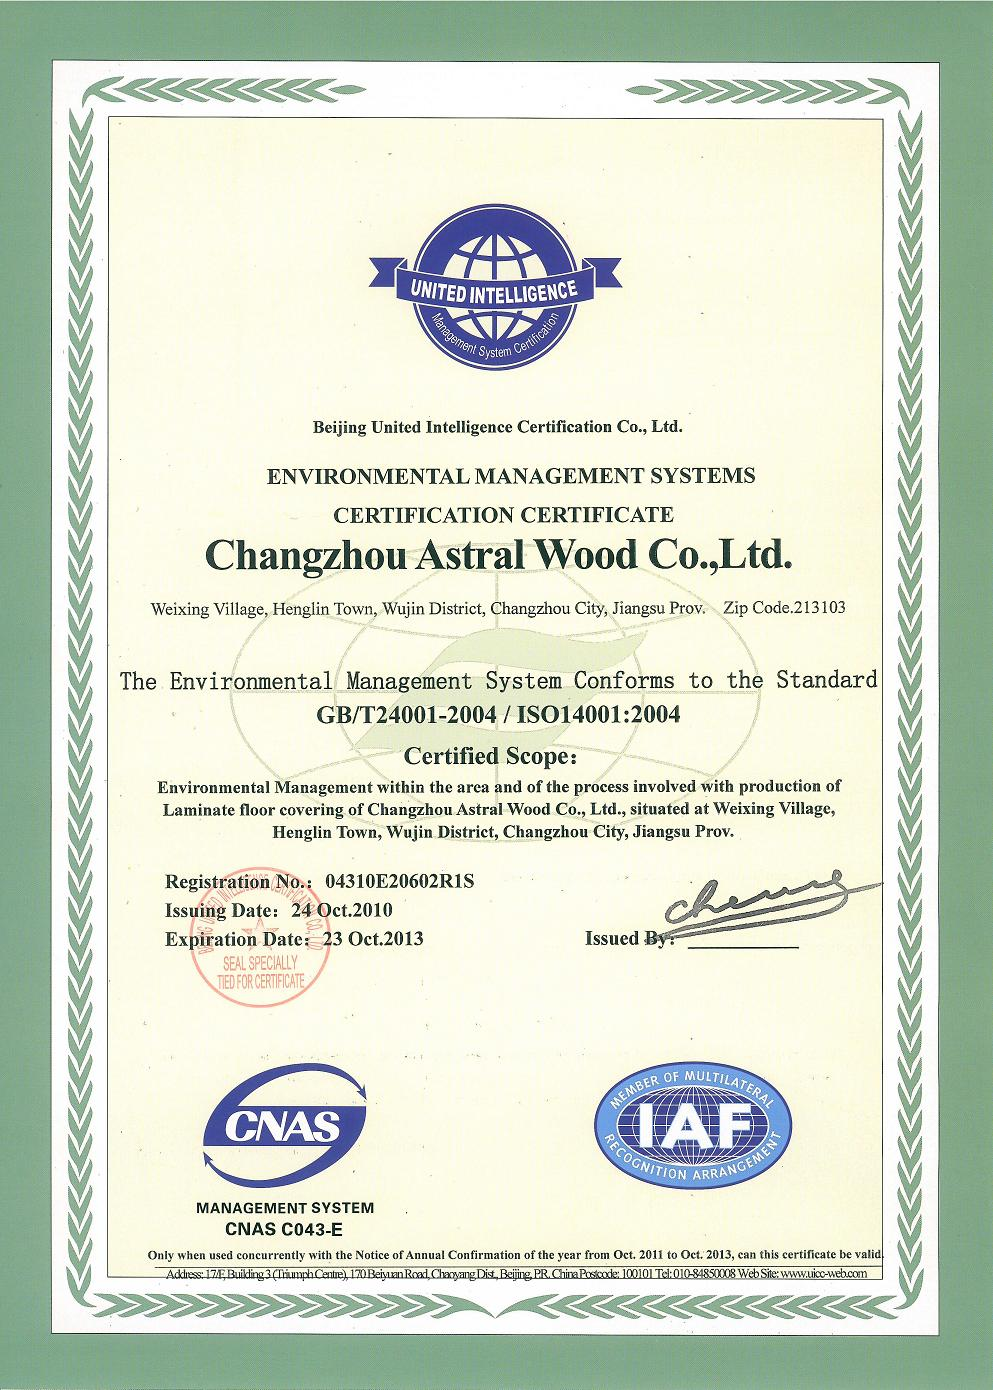 Certifacate of astral